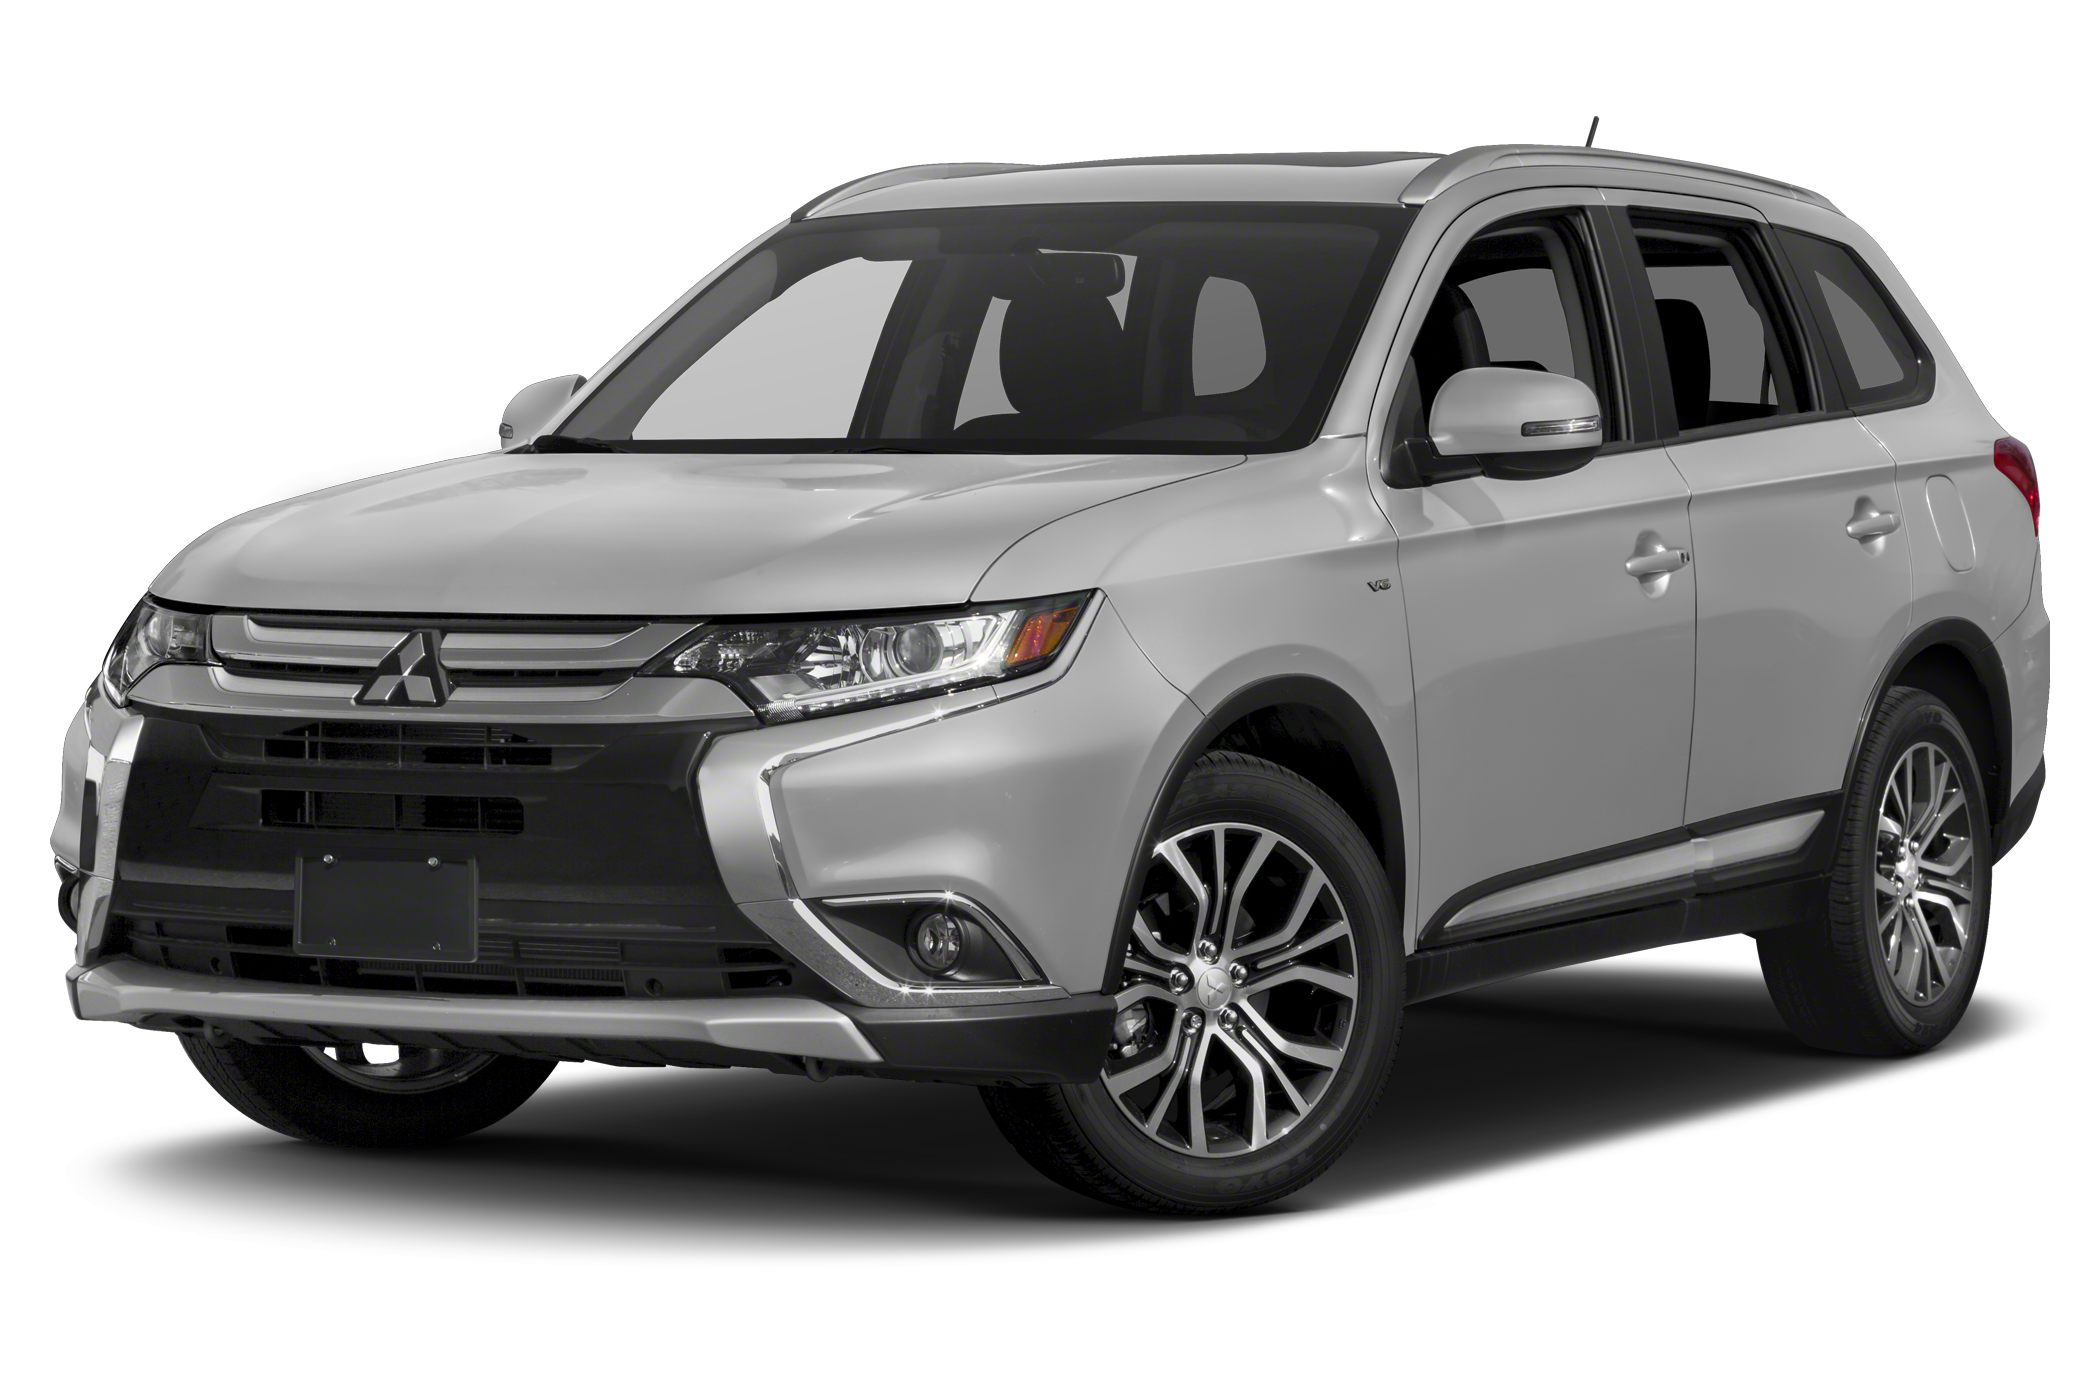 diesel galleries awd price specification aspire photos mitsubishi outlander review exceed caradvice